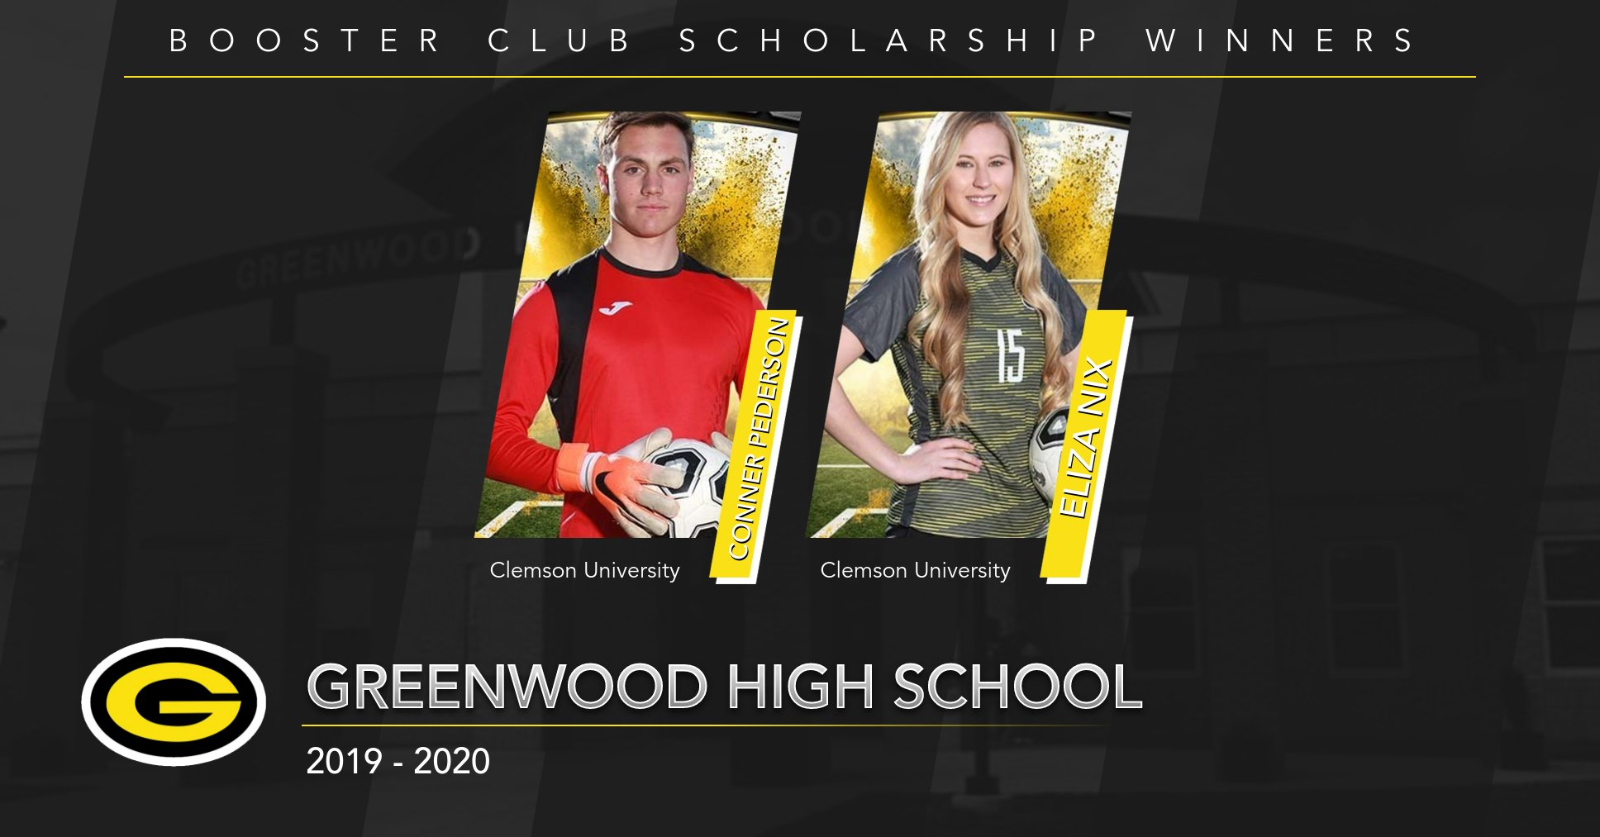 Congratulations to the GHS Booster Club Scholarship Winners